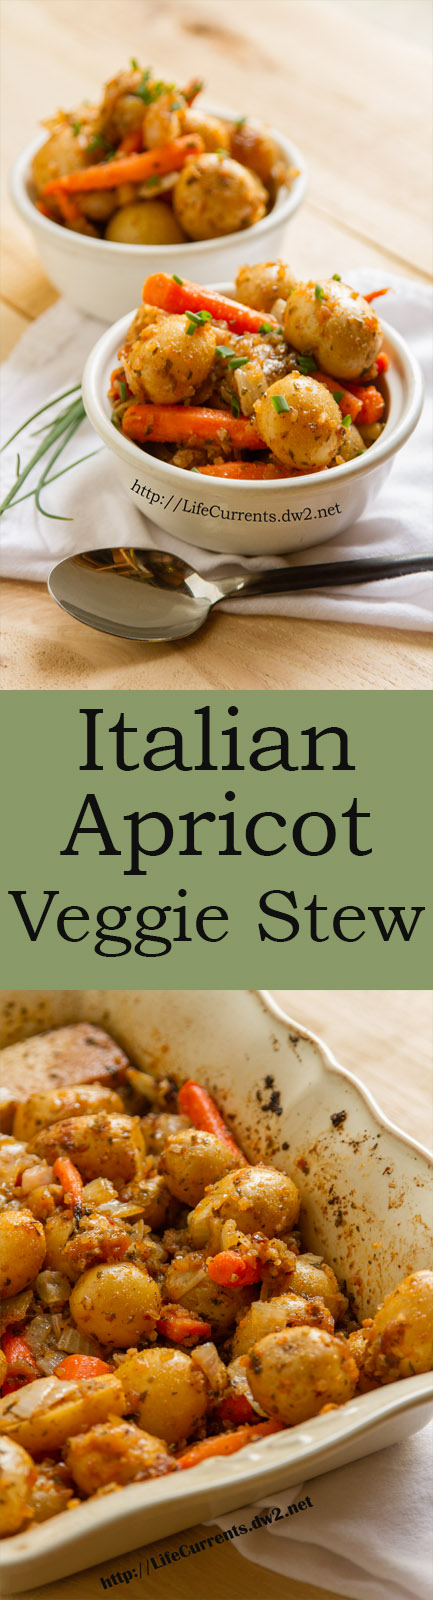 Vegetarian Italian Apricot Stew Recipe